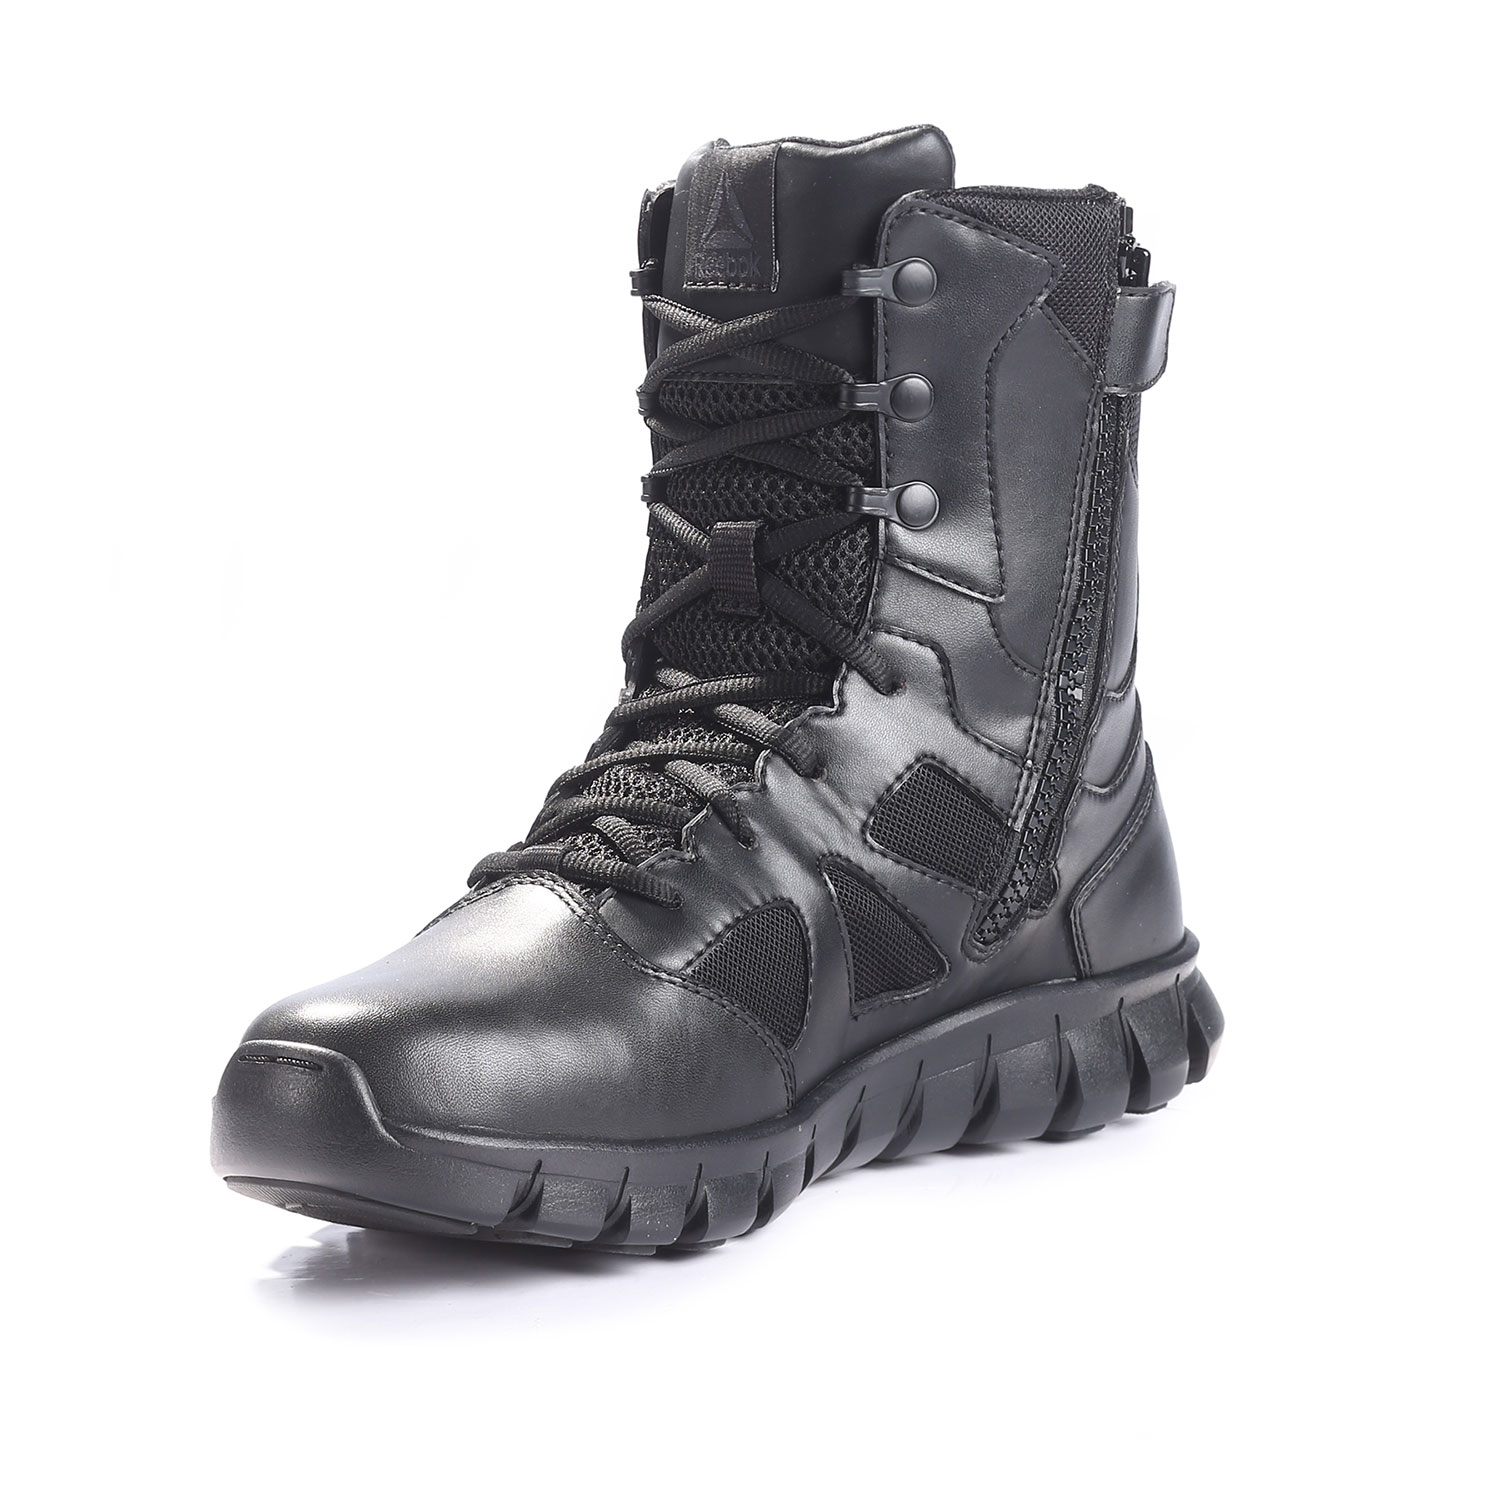 2d79f84802b75a Reebok Sublite Cushion Tactical Side Zip Waterproof Boot